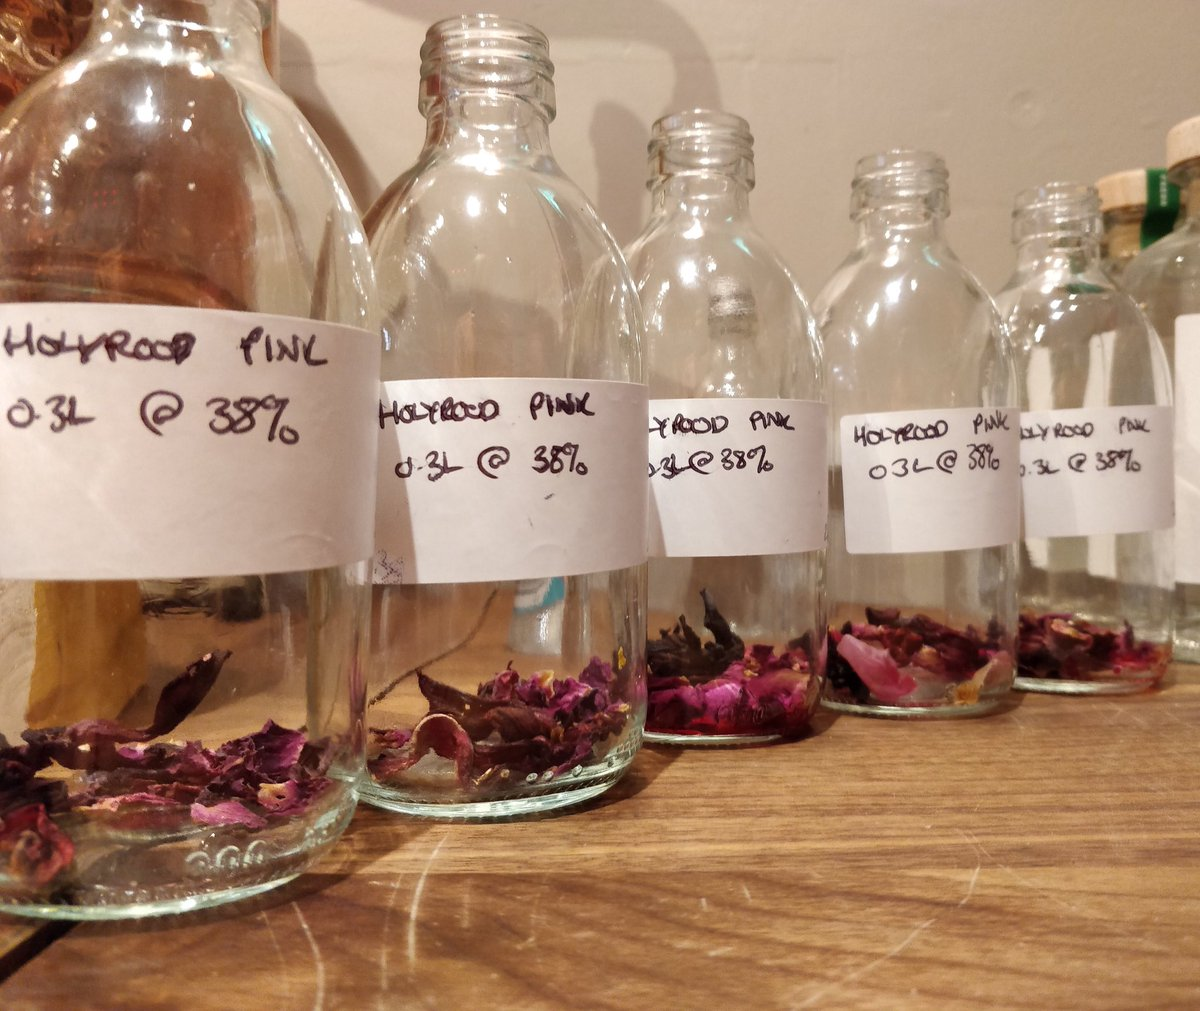 Holyrood Distillery On Twitter Some Pics Of Our Prototype Pink Gin